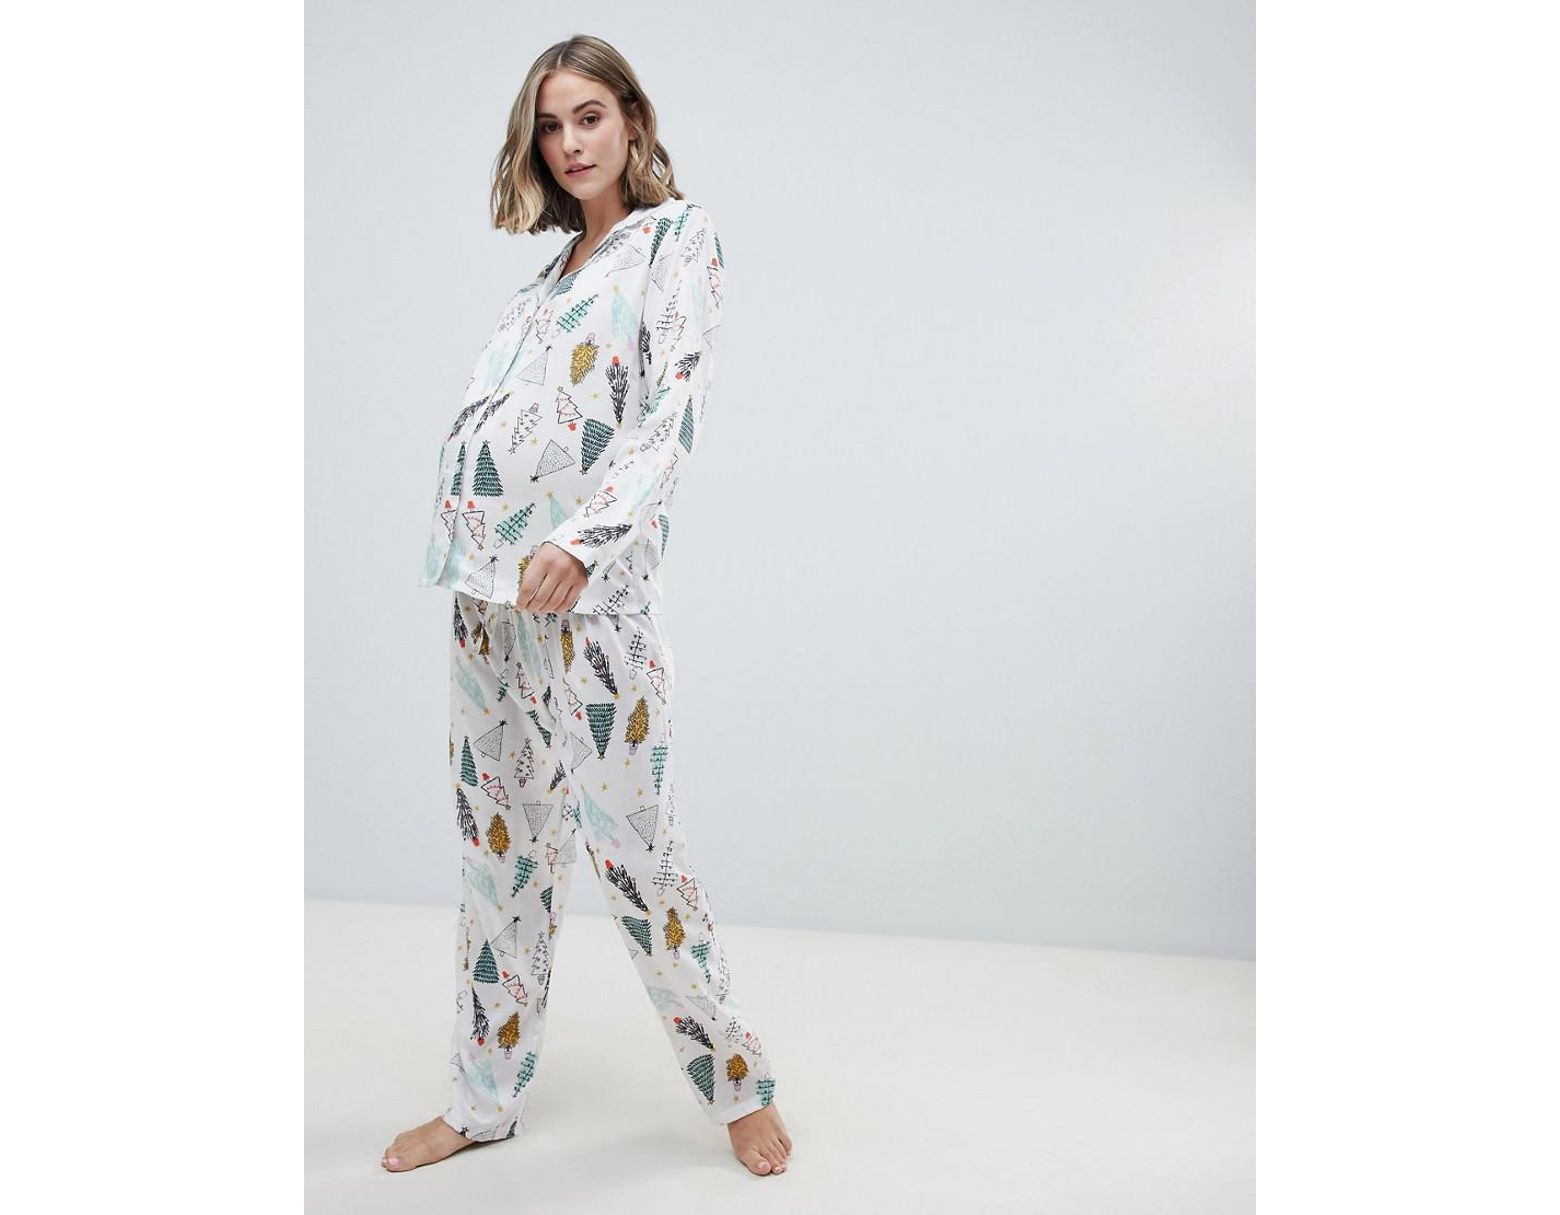 78c735756e700 ASOS Asos Design Maternity Christmas Tree Traditional Shirt And Pants Pyjama  Set In 100% Modal in White - Lyst